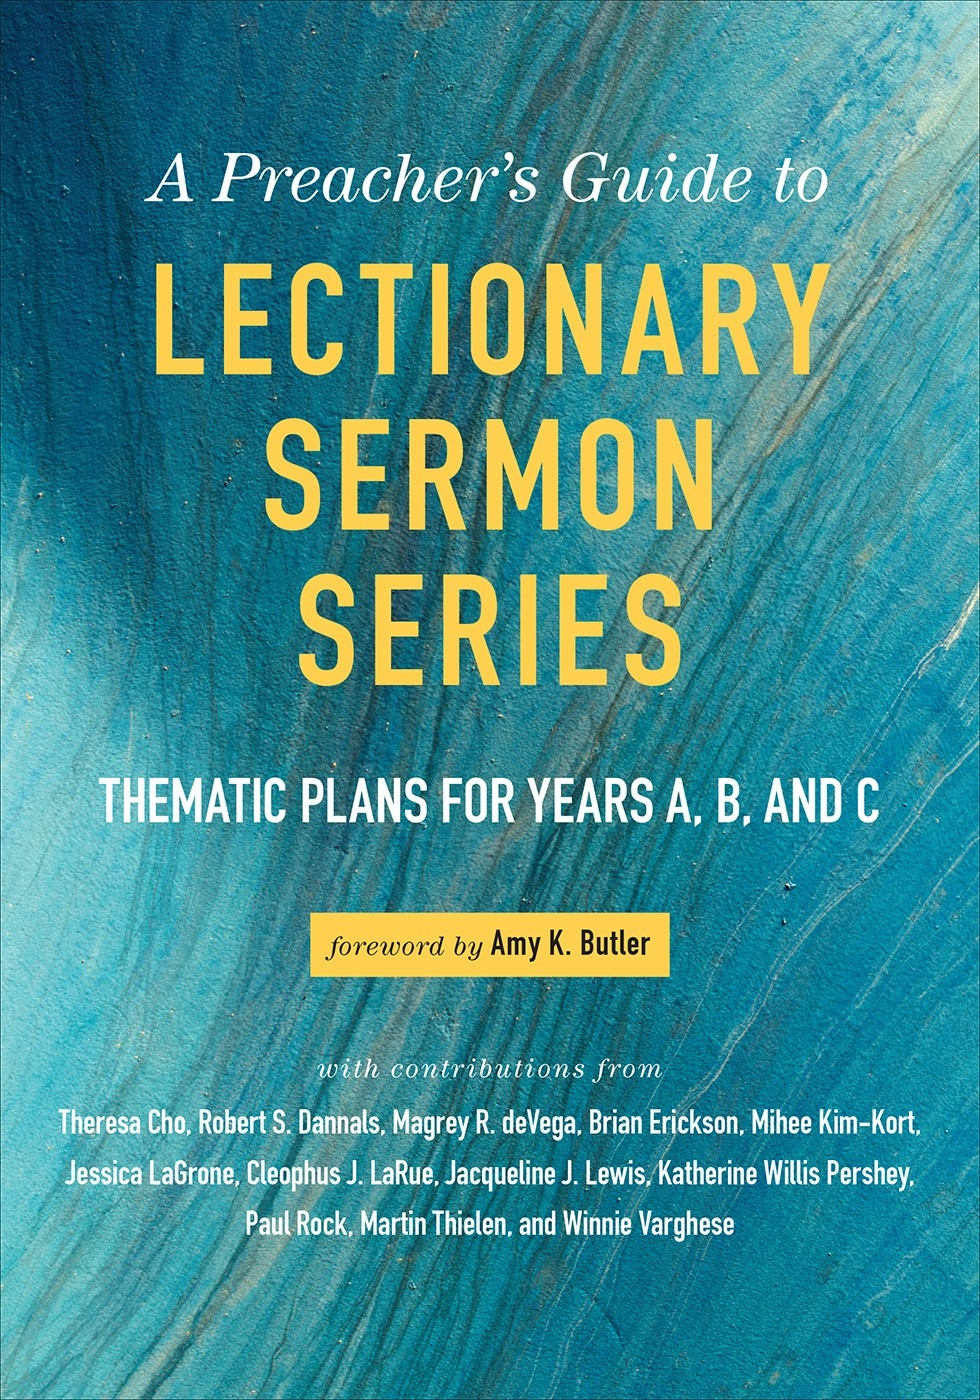 A Preacher's Guide To Lectionary Sermon Series Paper  Methodist Lectionary